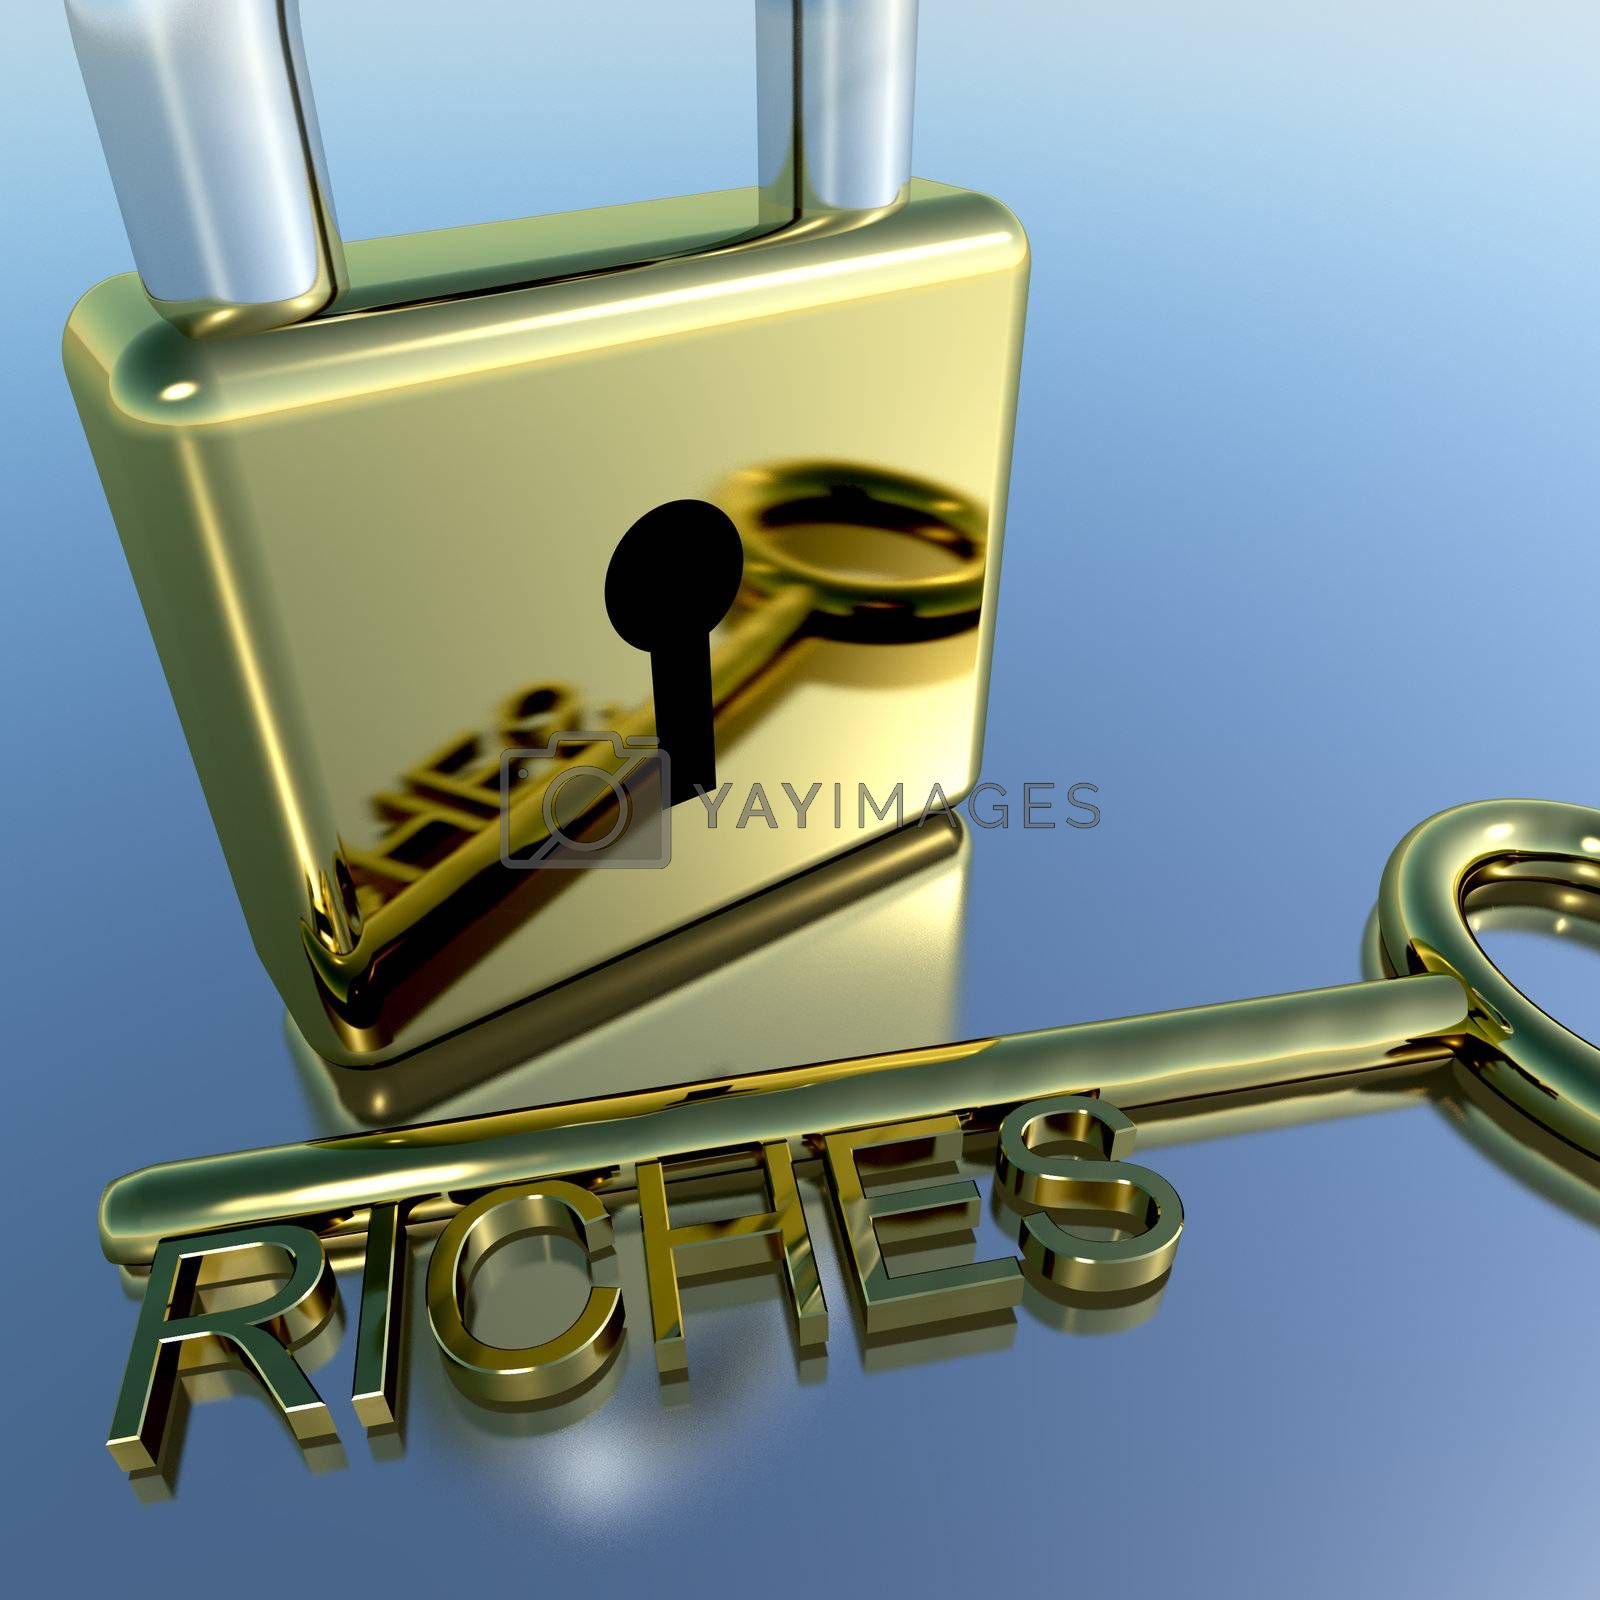 Padlock With Riches Key Showing Wealth Savings And Fortunes